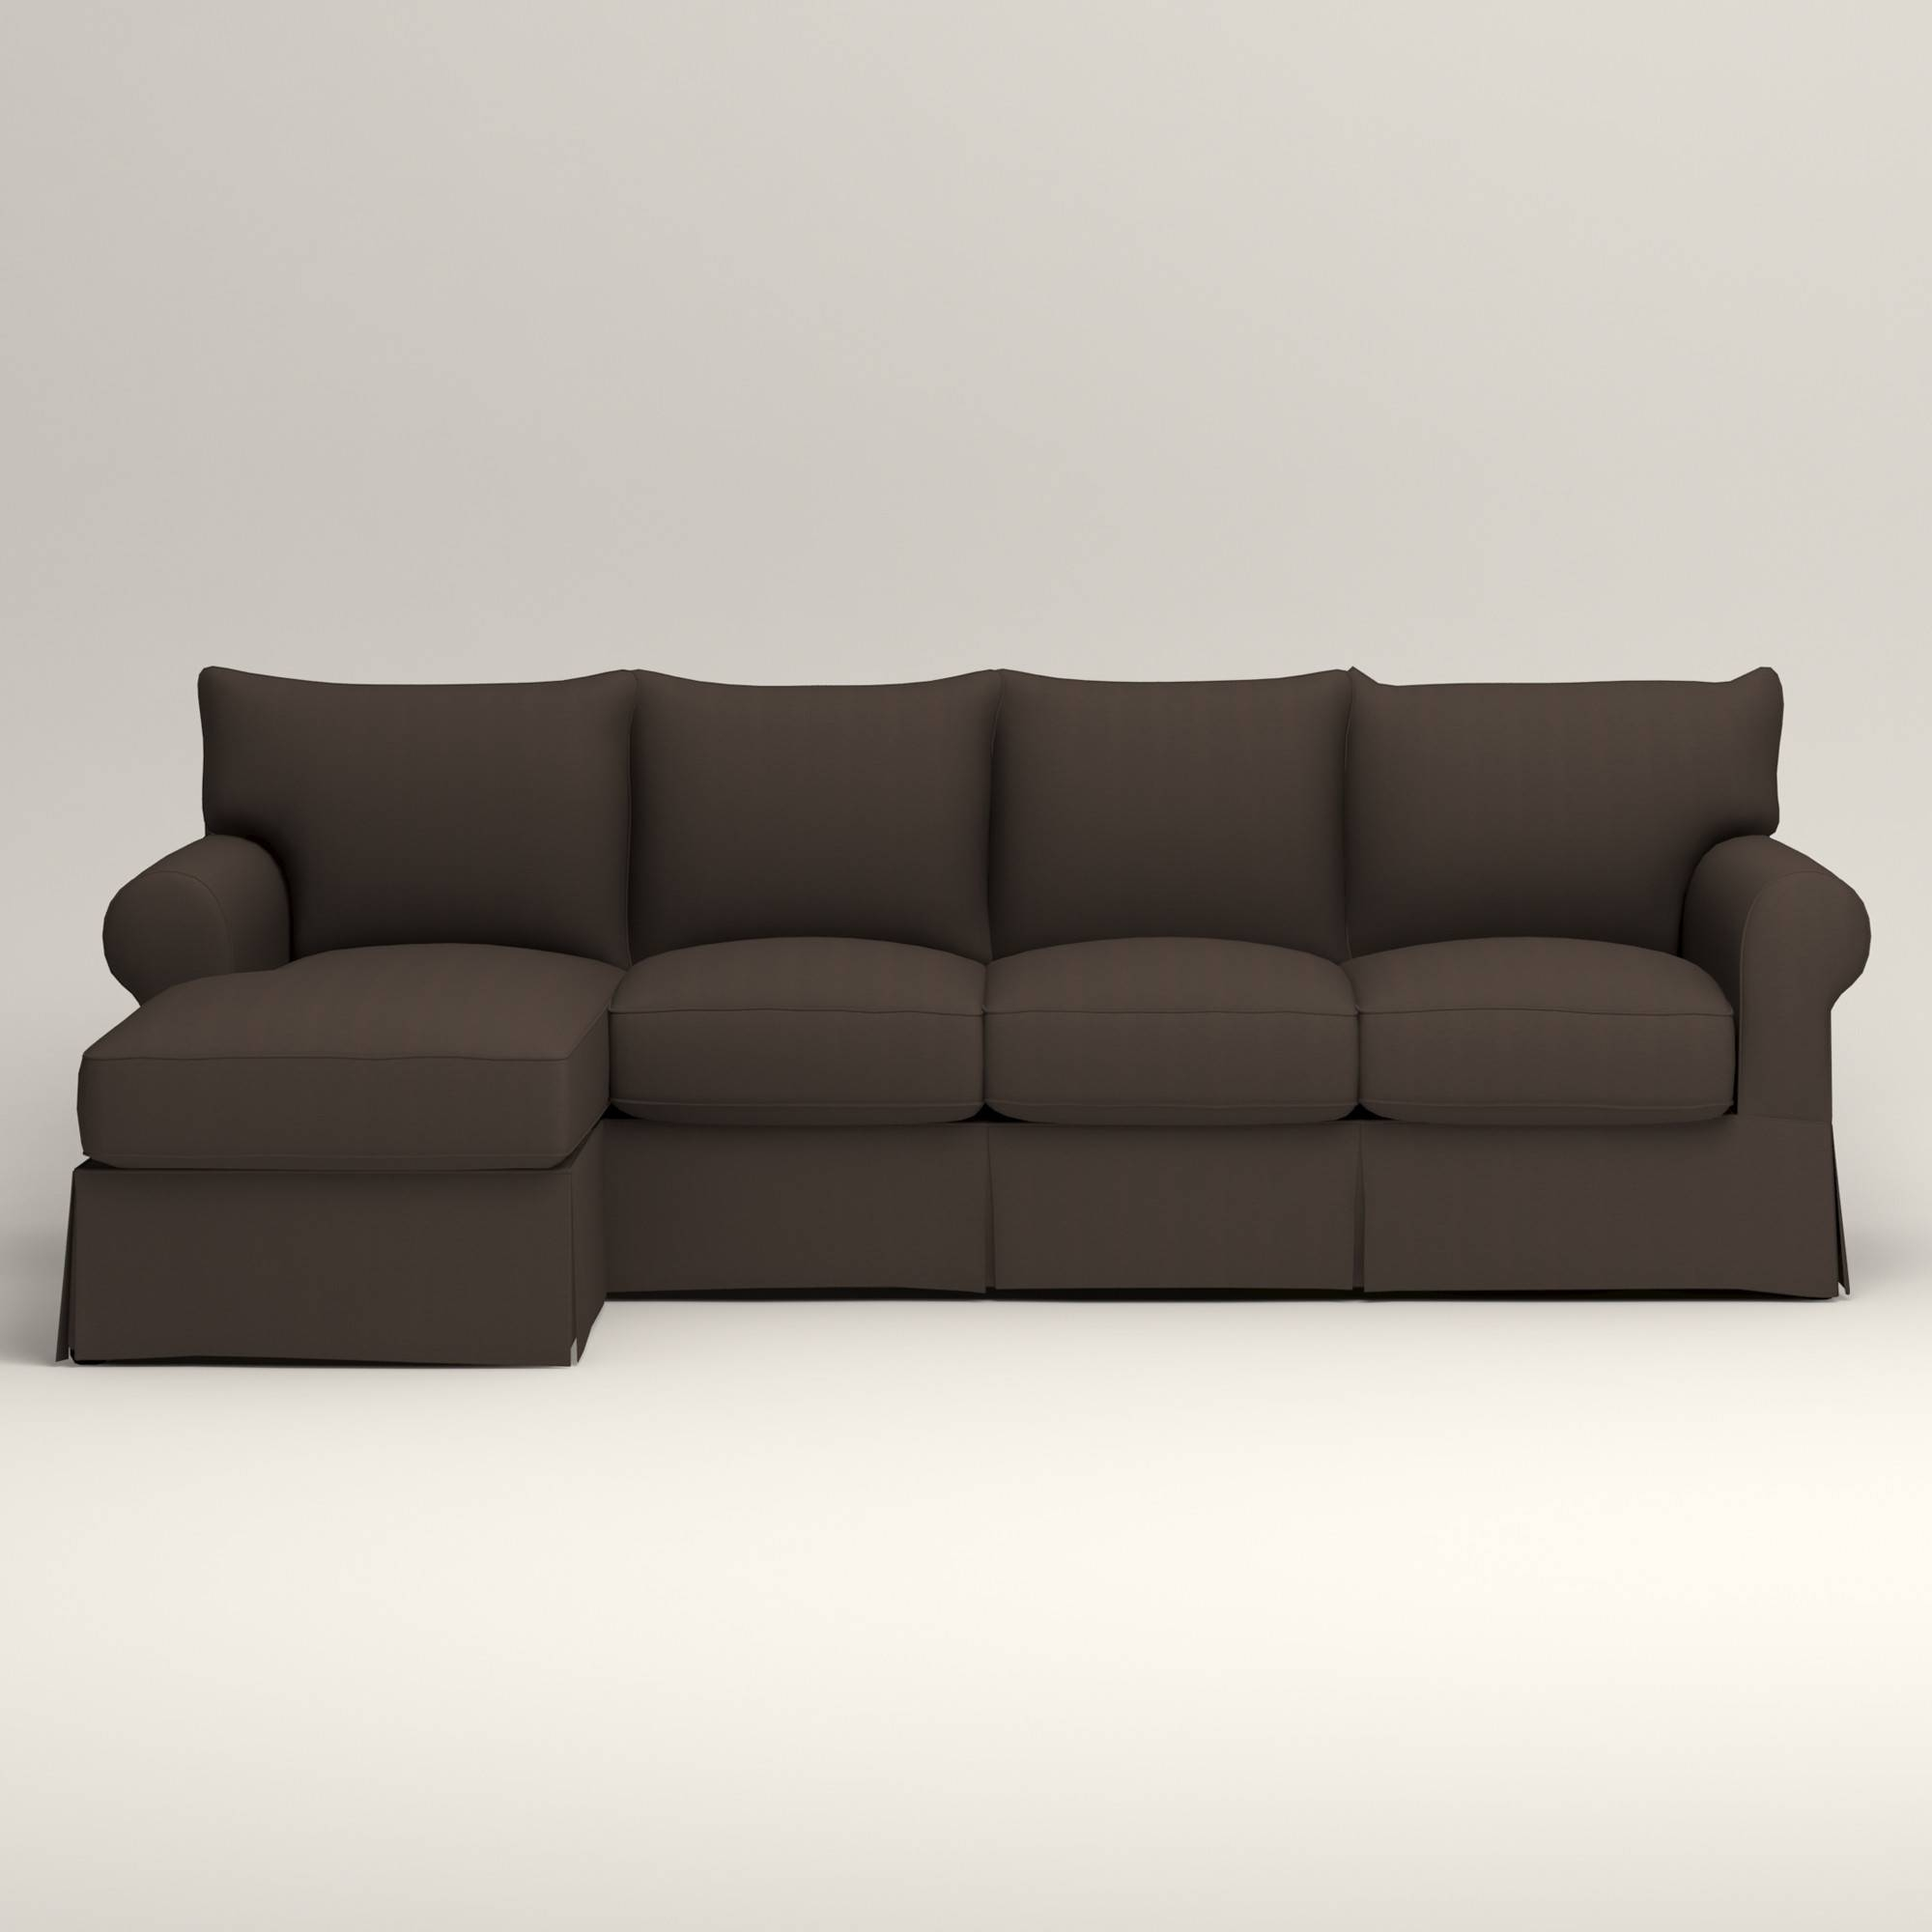 Furniture & Rug: Sectional Sleeper Sofa | Sleeper Sofa Ikea | Sofa for Big Lots Sofa Bed (Image 8 of 30)